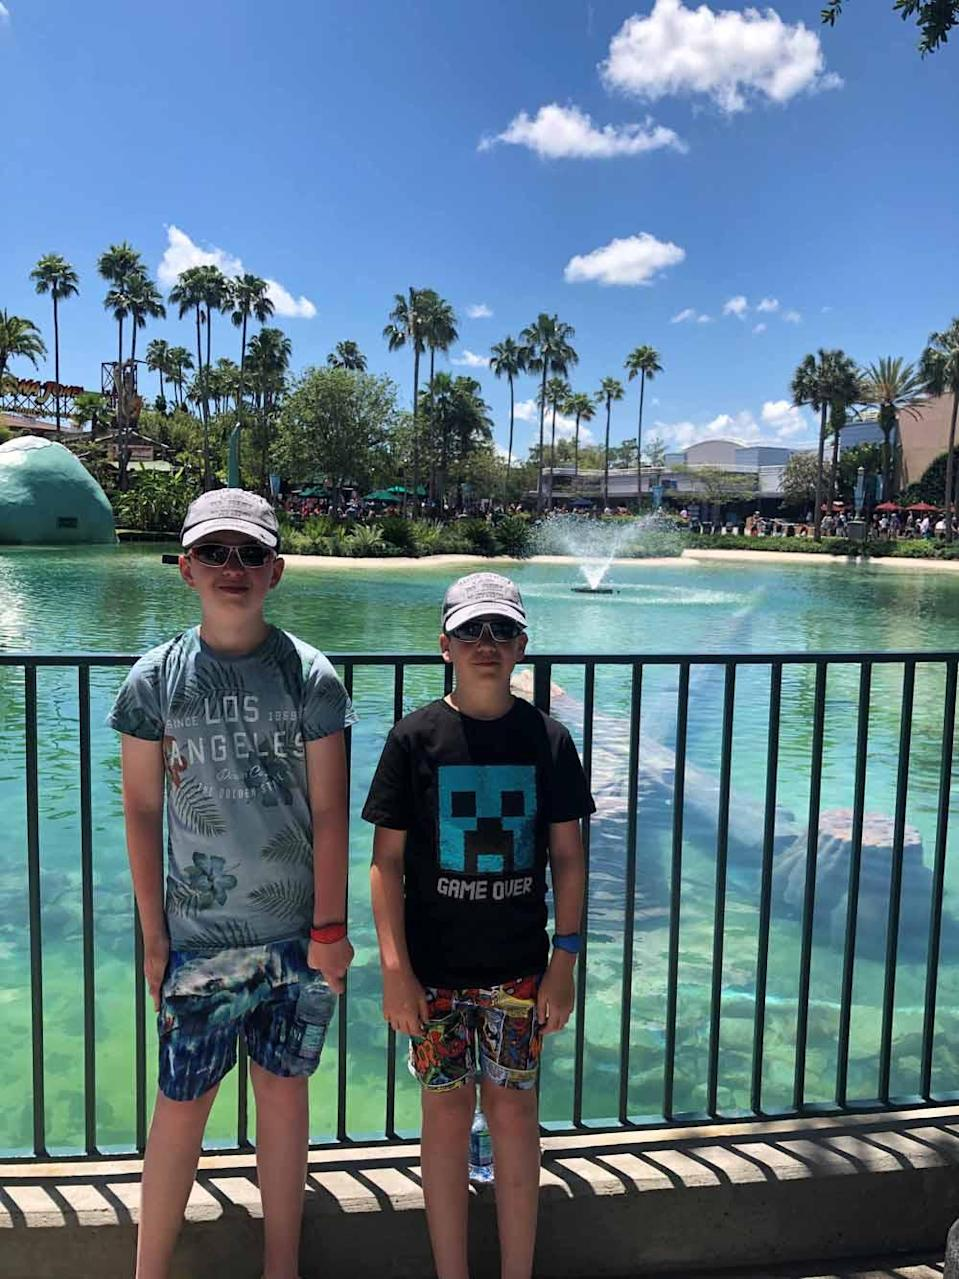 Daniel, left, and his little brother Matthew in Disneyworld, Florida, on a family holiday in May 2019. PA REAL LIFE COLLECT